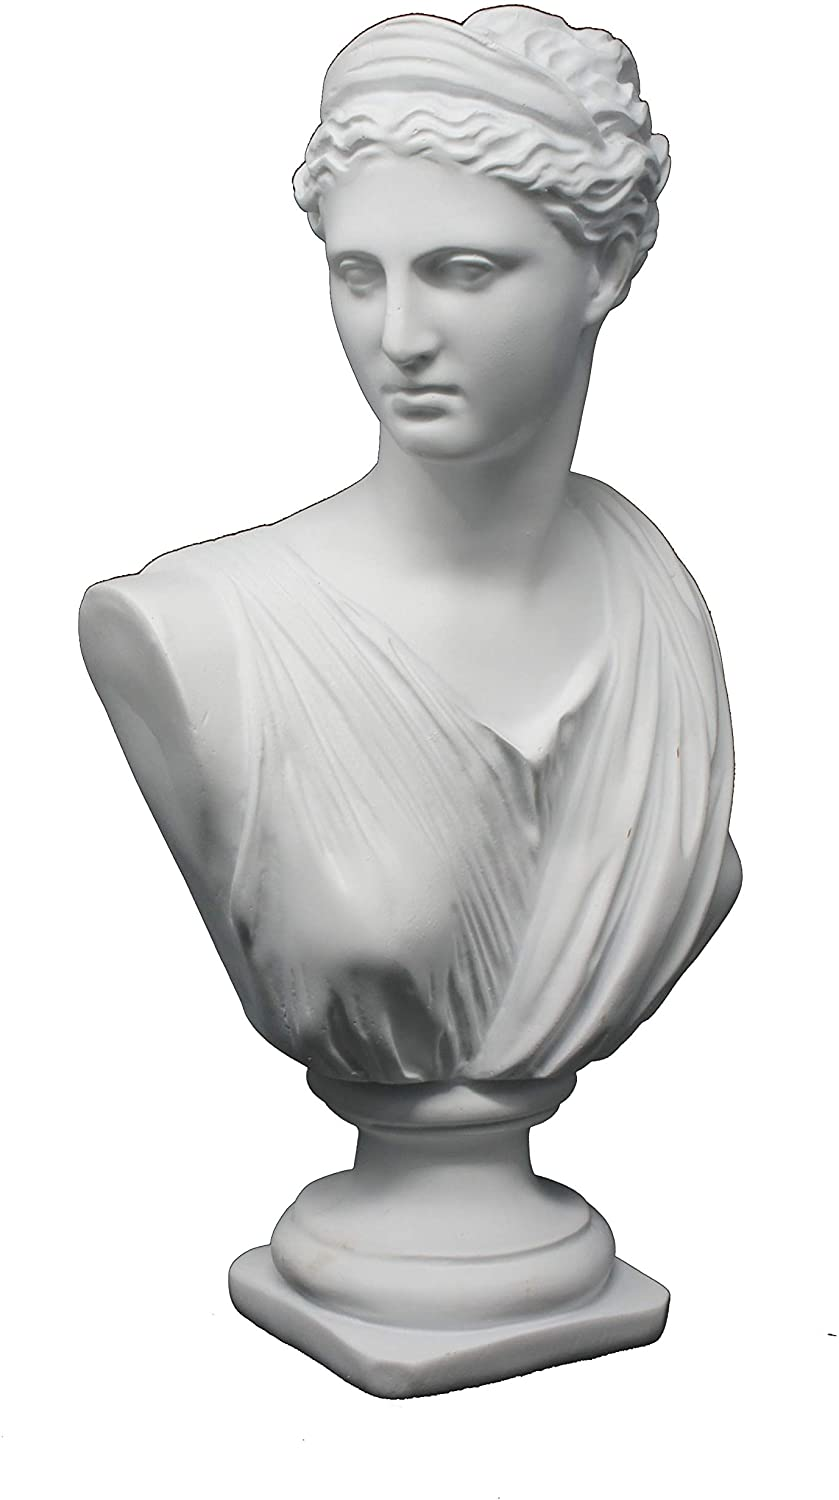 Good Buy Gifts Diana The Huntress Bust - Roman God Statue - 1Ft Height - White/Green Color (White)